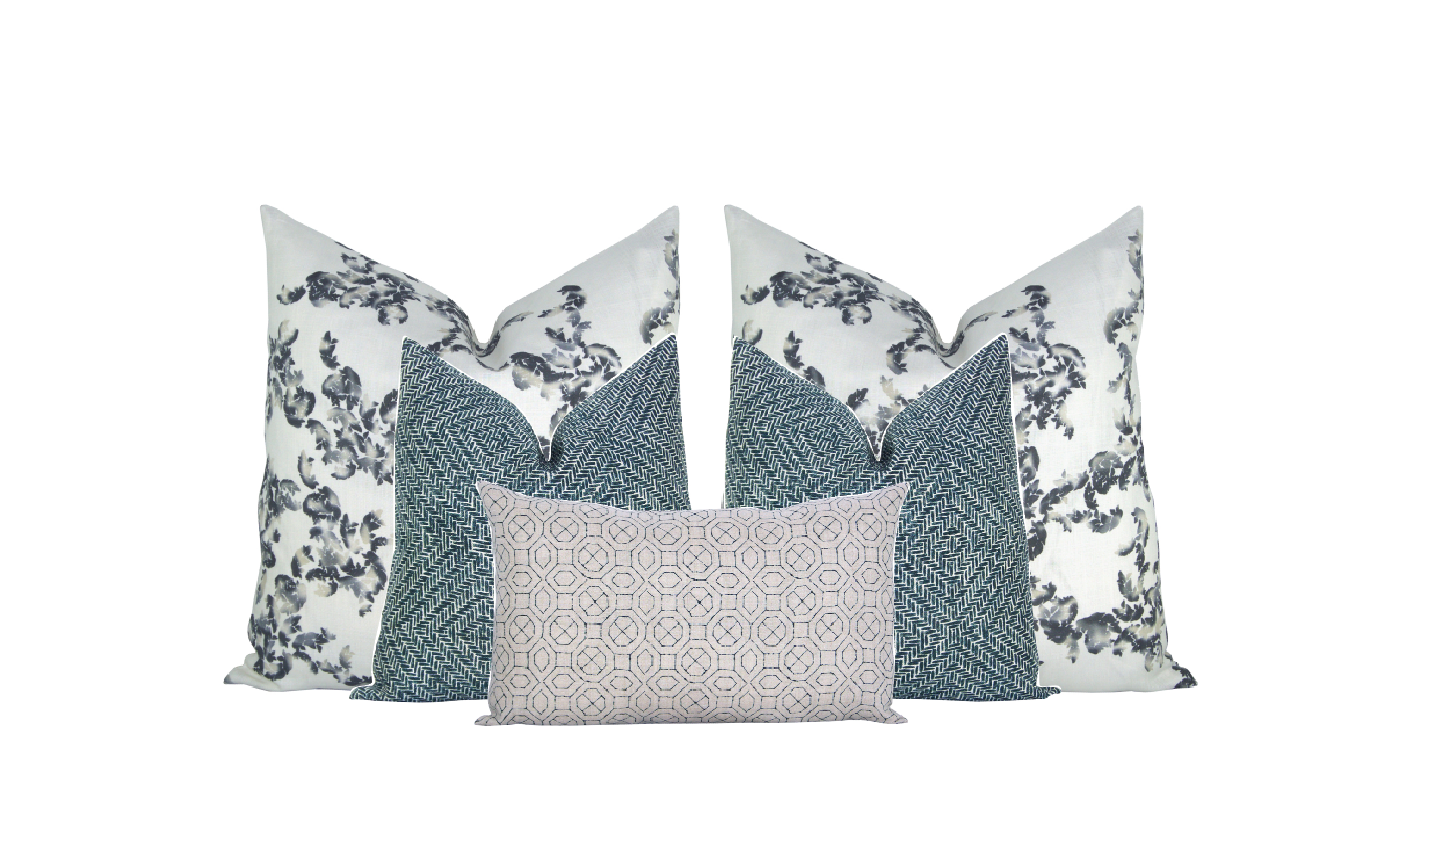 NAVY PATTERN PLAY - We love the balance of this relaxed floral with two more structured patterns.